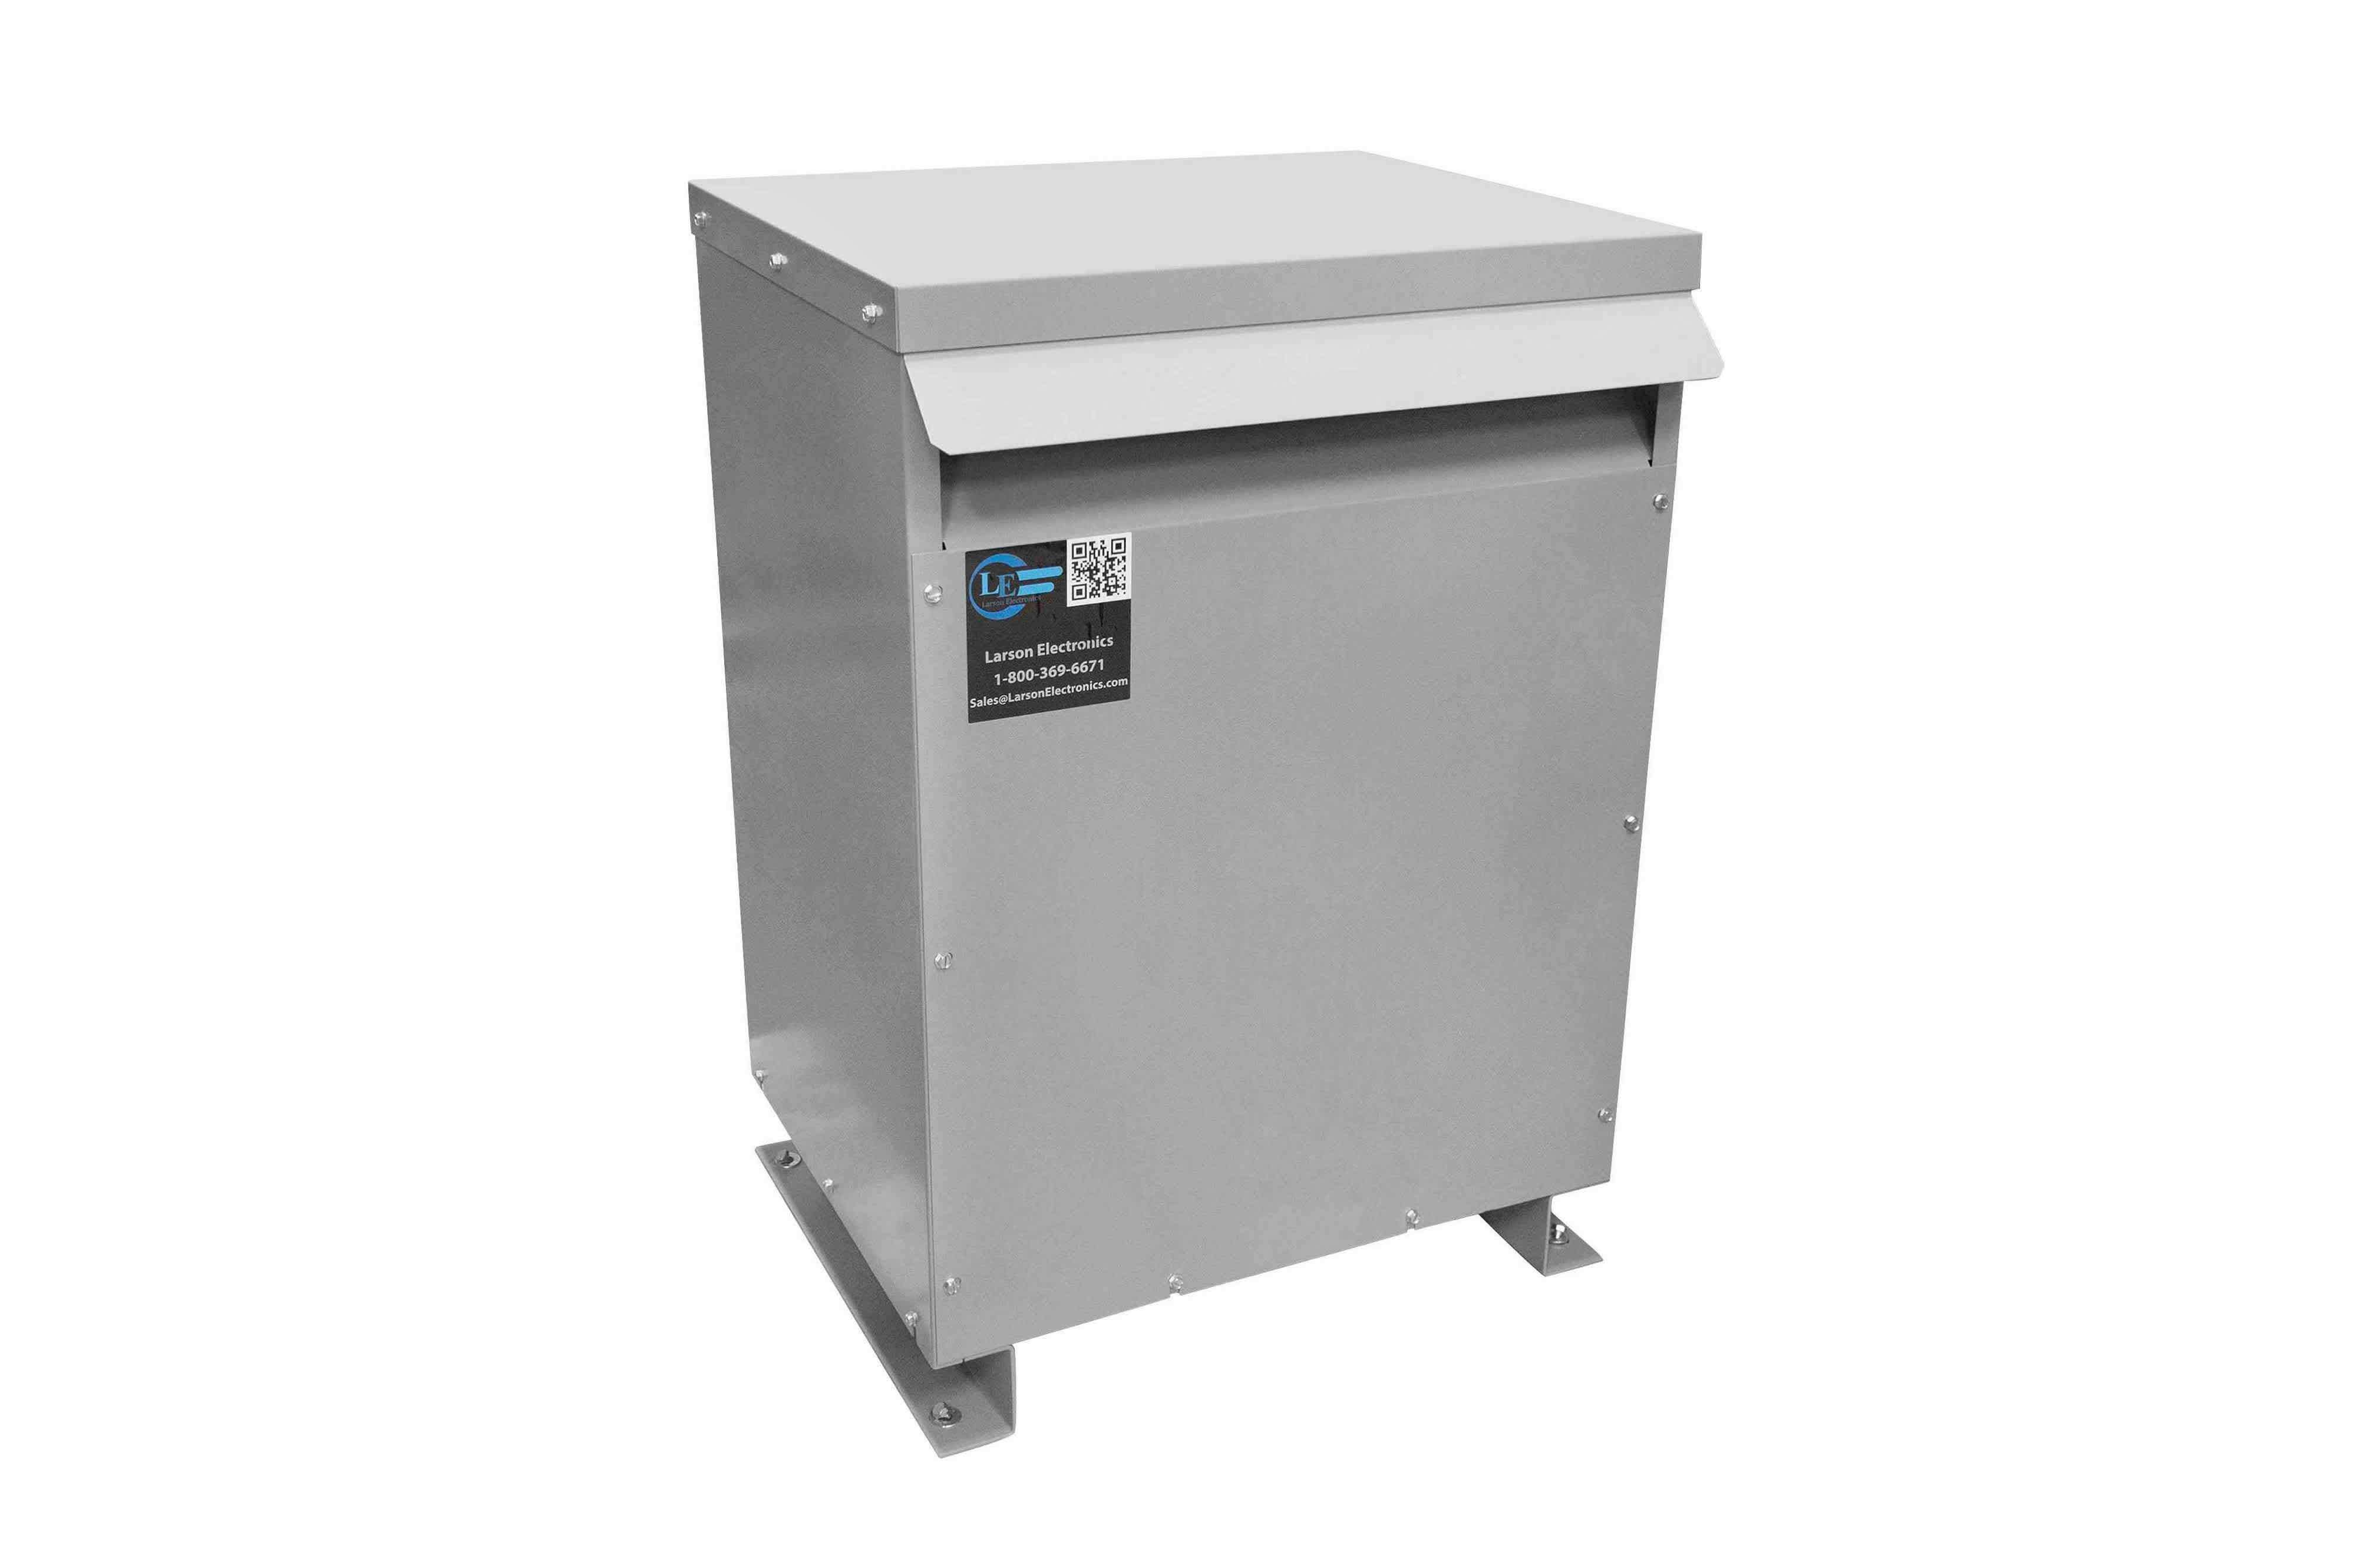 12 kVA 3PH Isolation Transformer, 575V Wye Primary, 208Y/120 Wye-N Secondary, N3R, Ventilated, 60 Hz